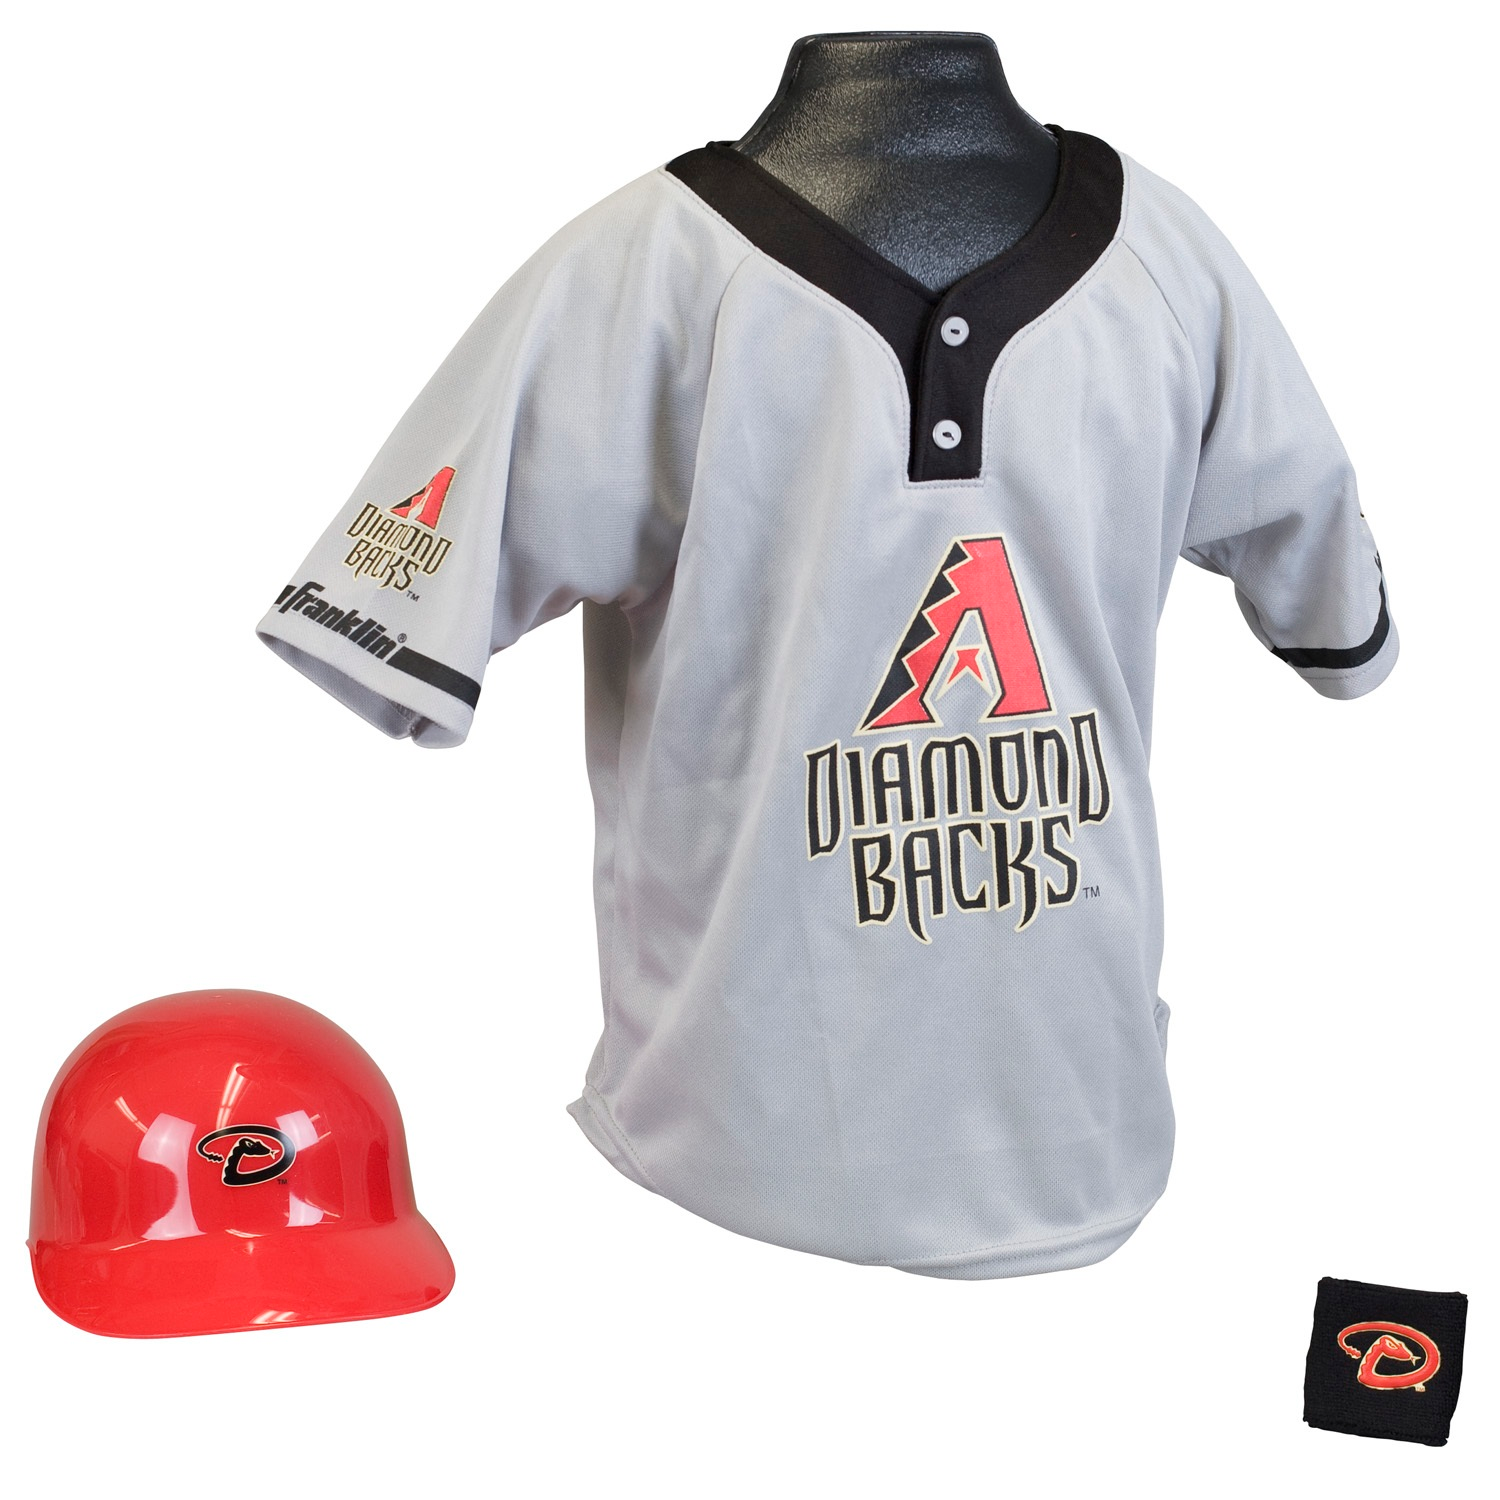 Arizona Diamondbacks MLB Youth Uniform Set Halloween Costume